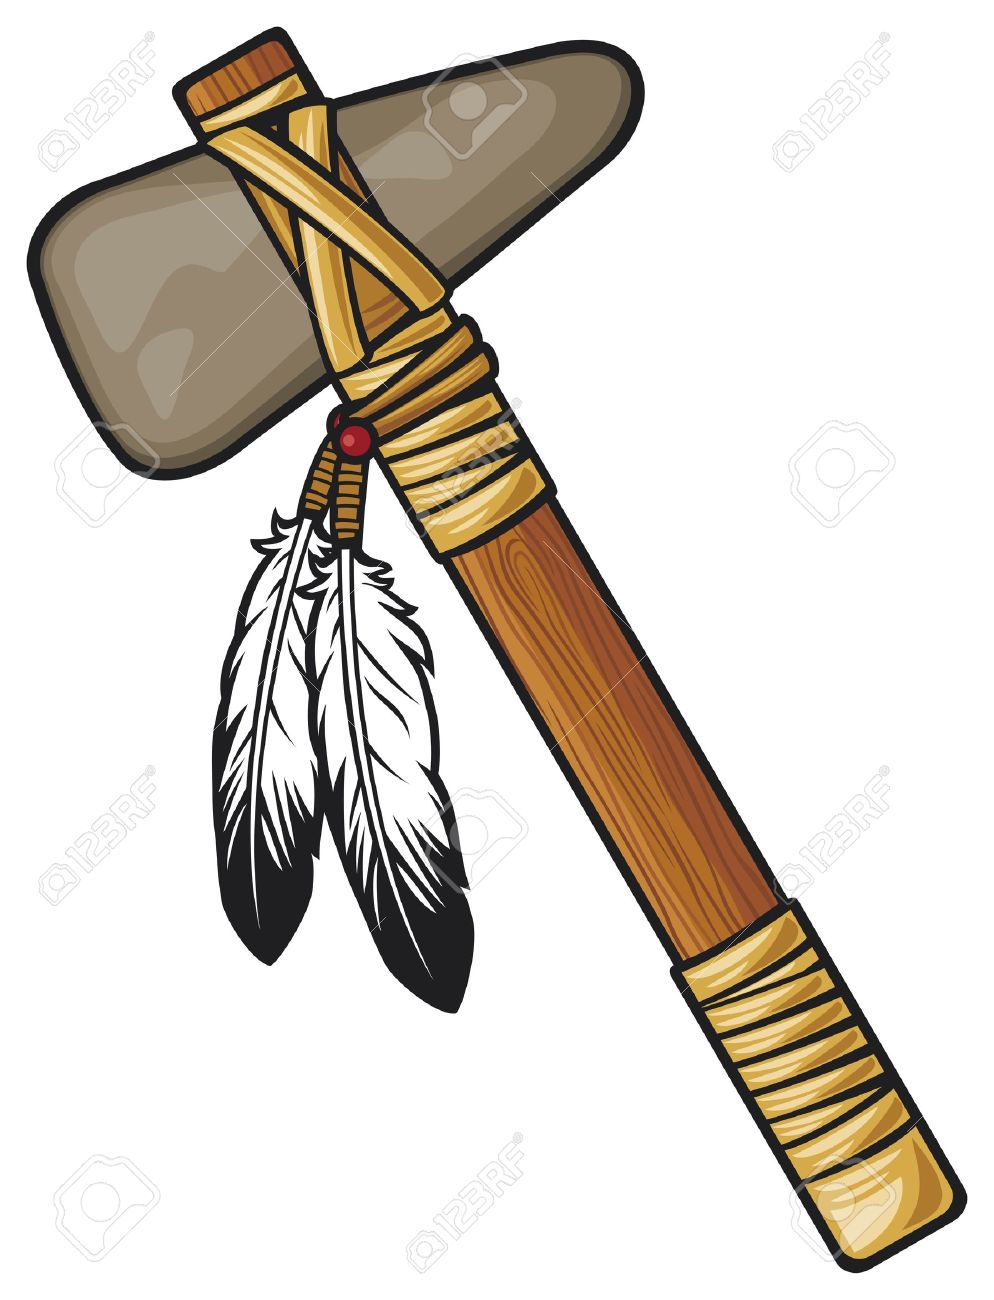 native american tomahawk royalty free cliparts vectors and stock rh 123rf com Seminole Tomahawk tomahawk clipart free